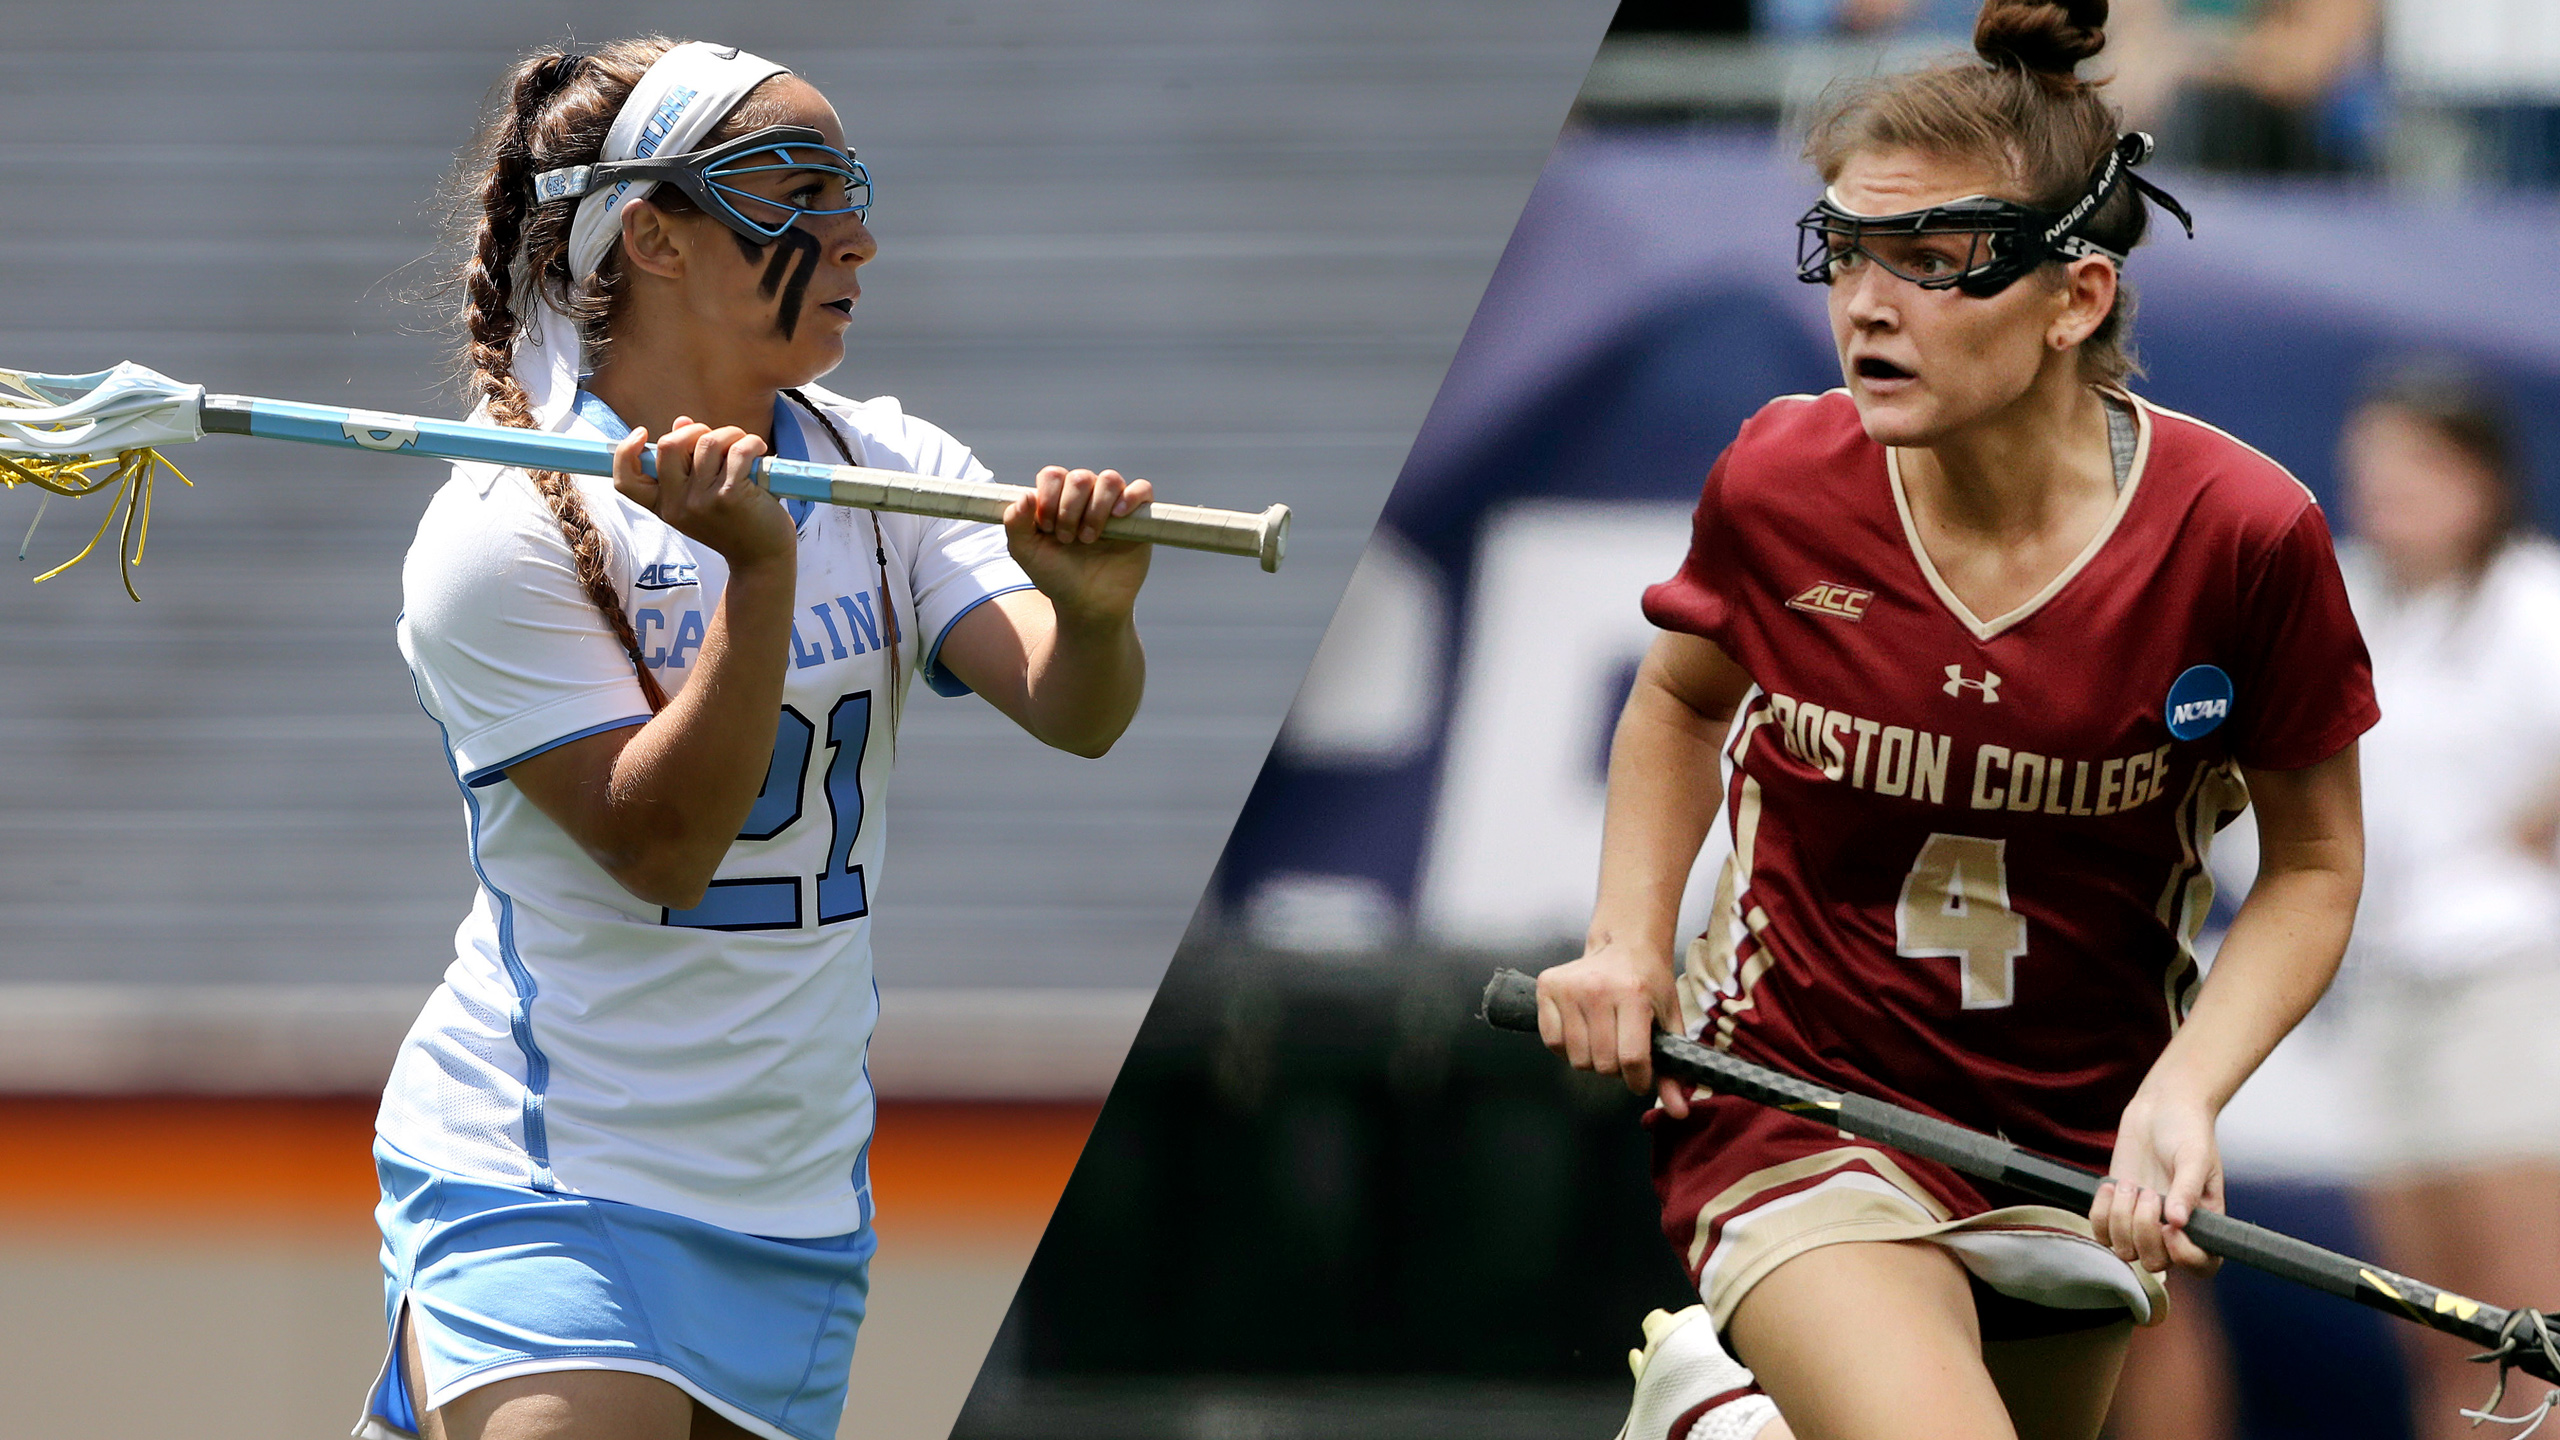 #3 North Carolina vs. #2 Boston College (Semifinal #1) (re-air)